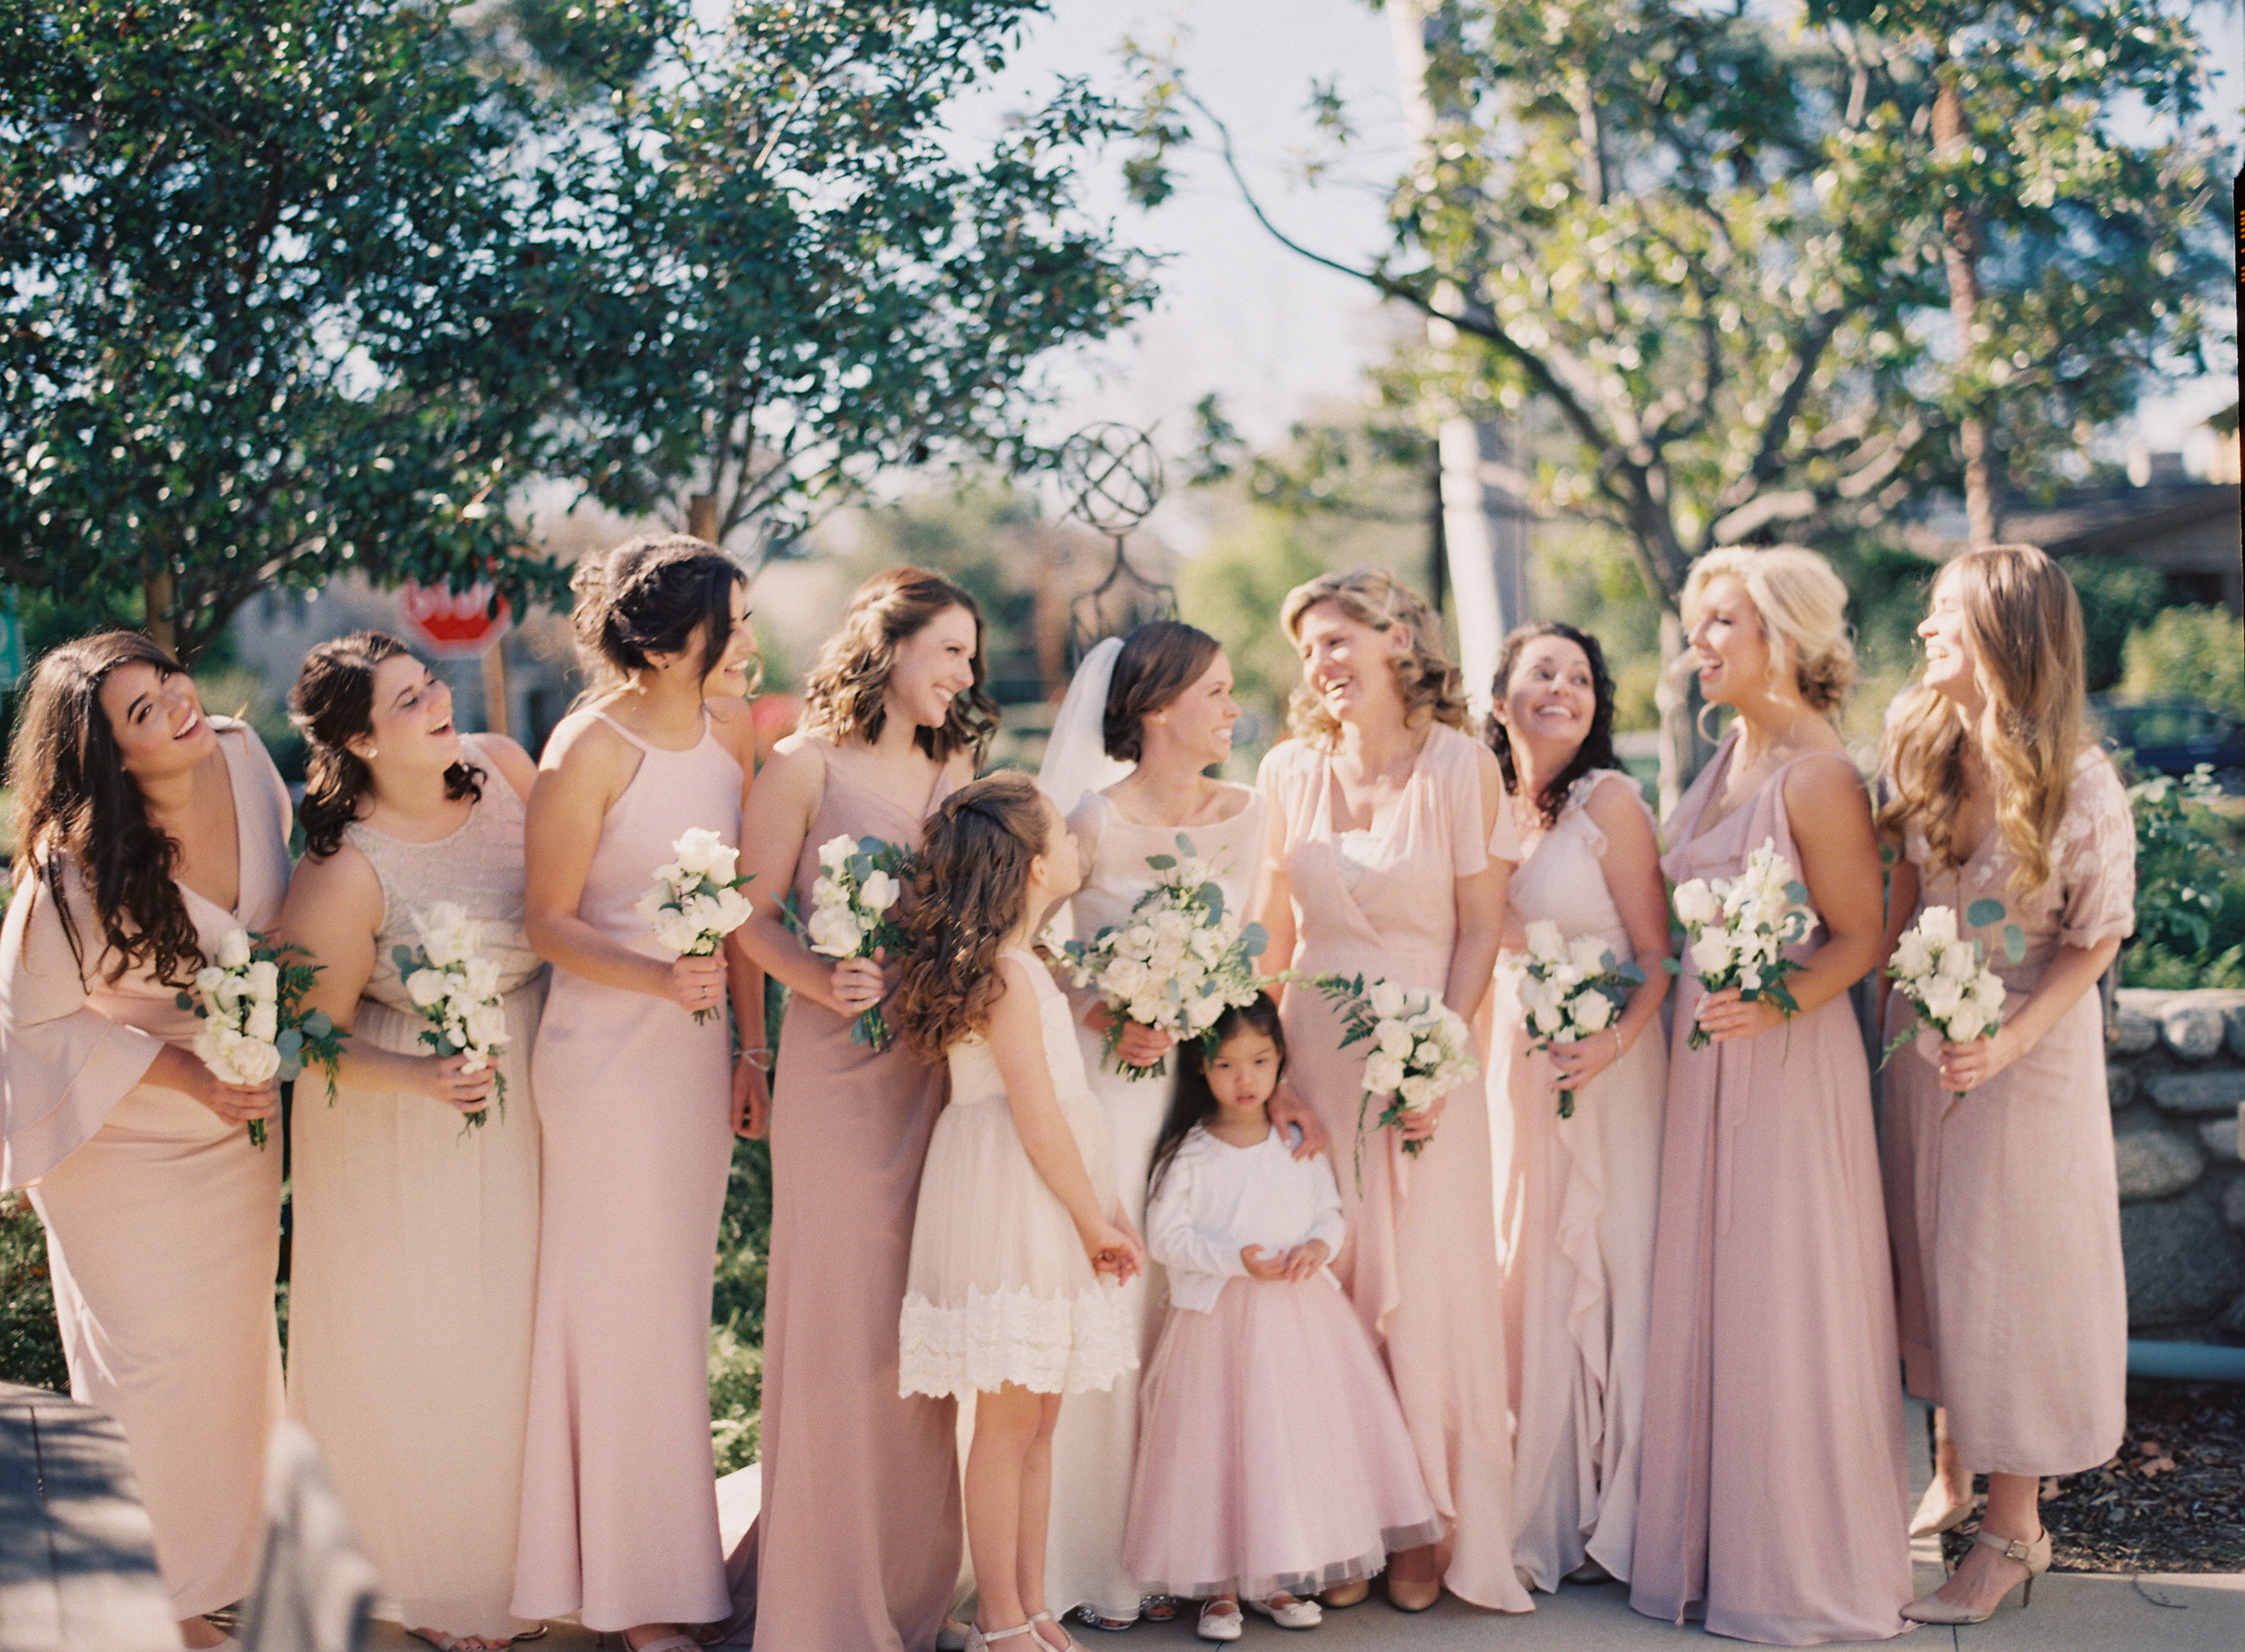 Bridesmaid Style | Southern California Romantic Wedding Near Their Home | Unions With Celia | Amy & Darren Photography |